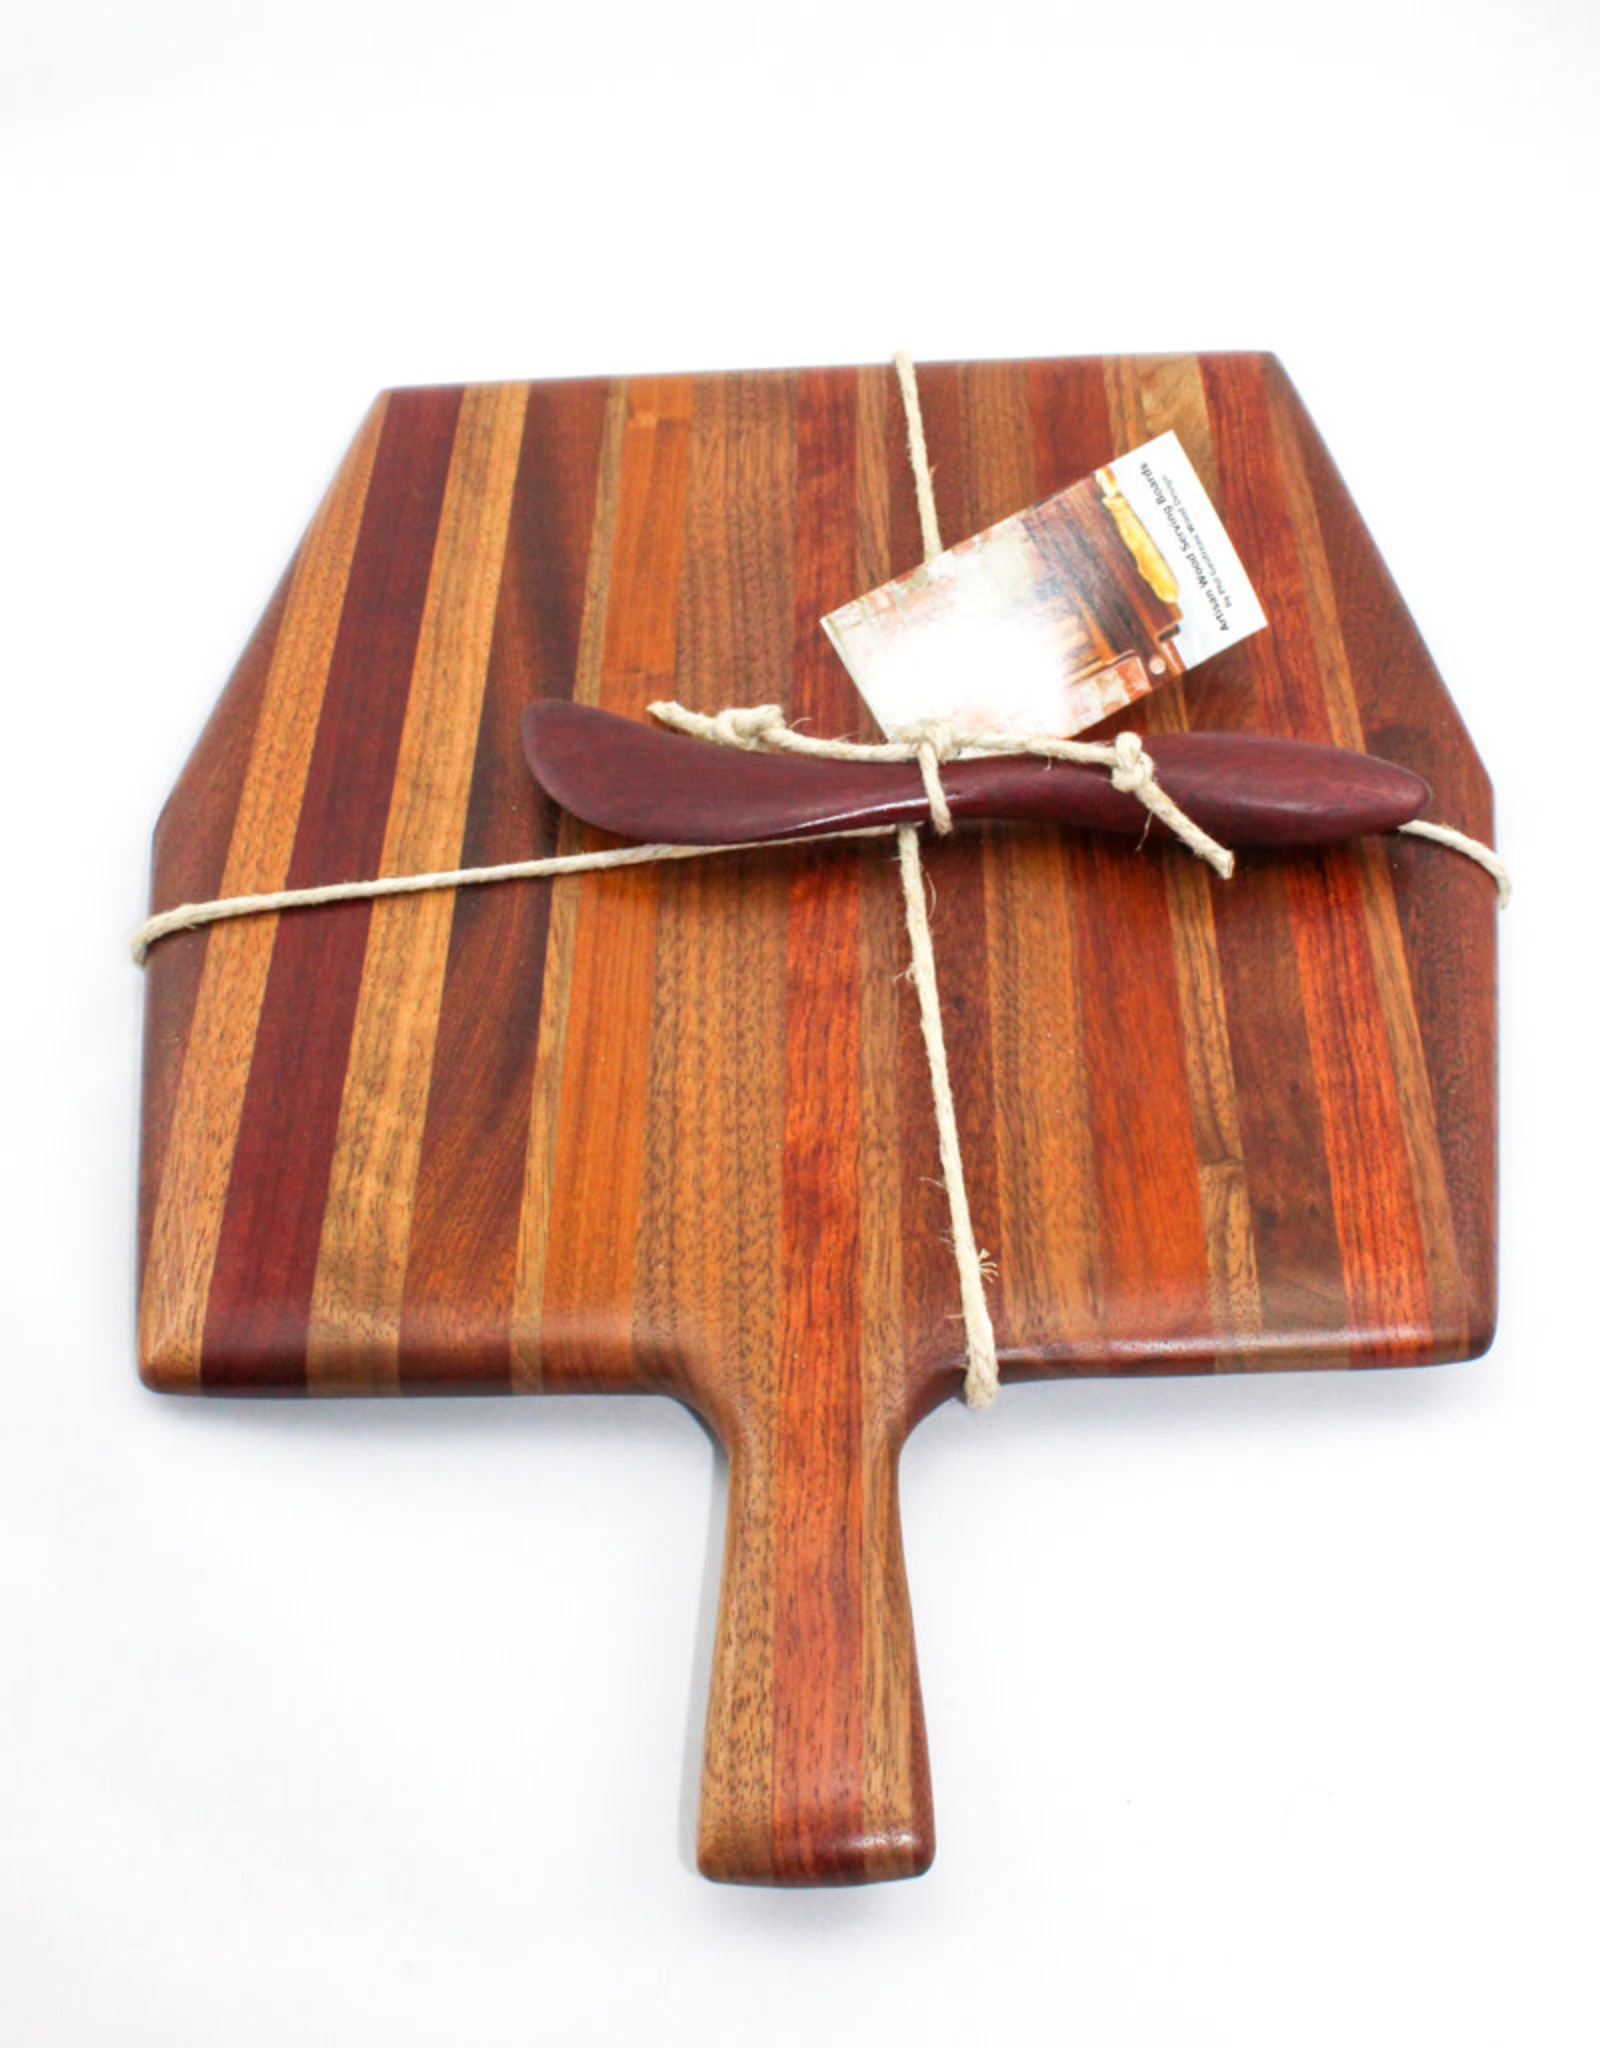 Phil Gautreau Wood Design 16'' Serving Board